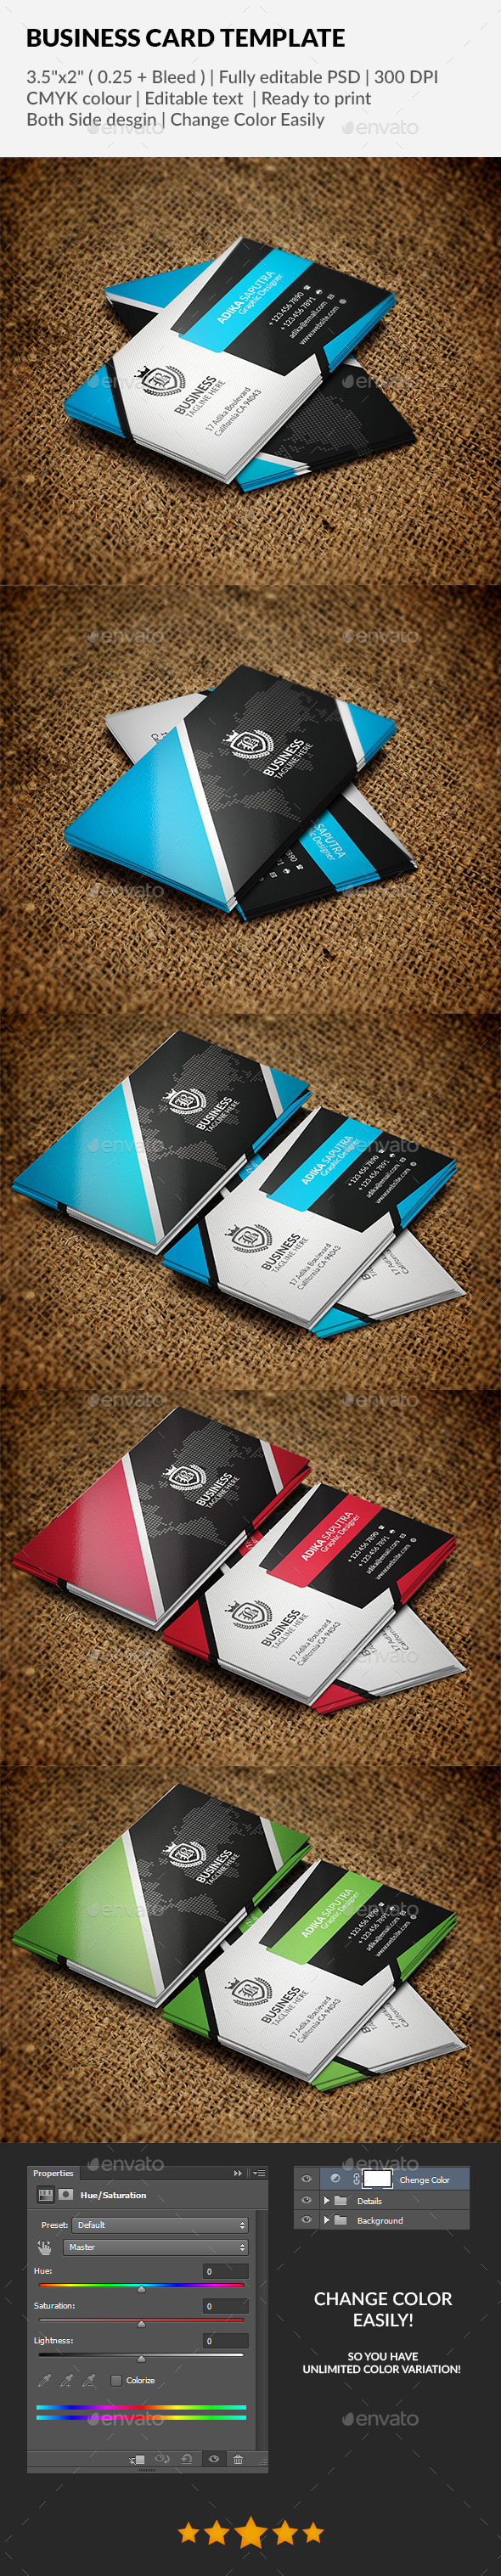 GraphicRiver Business Card Template 11942534